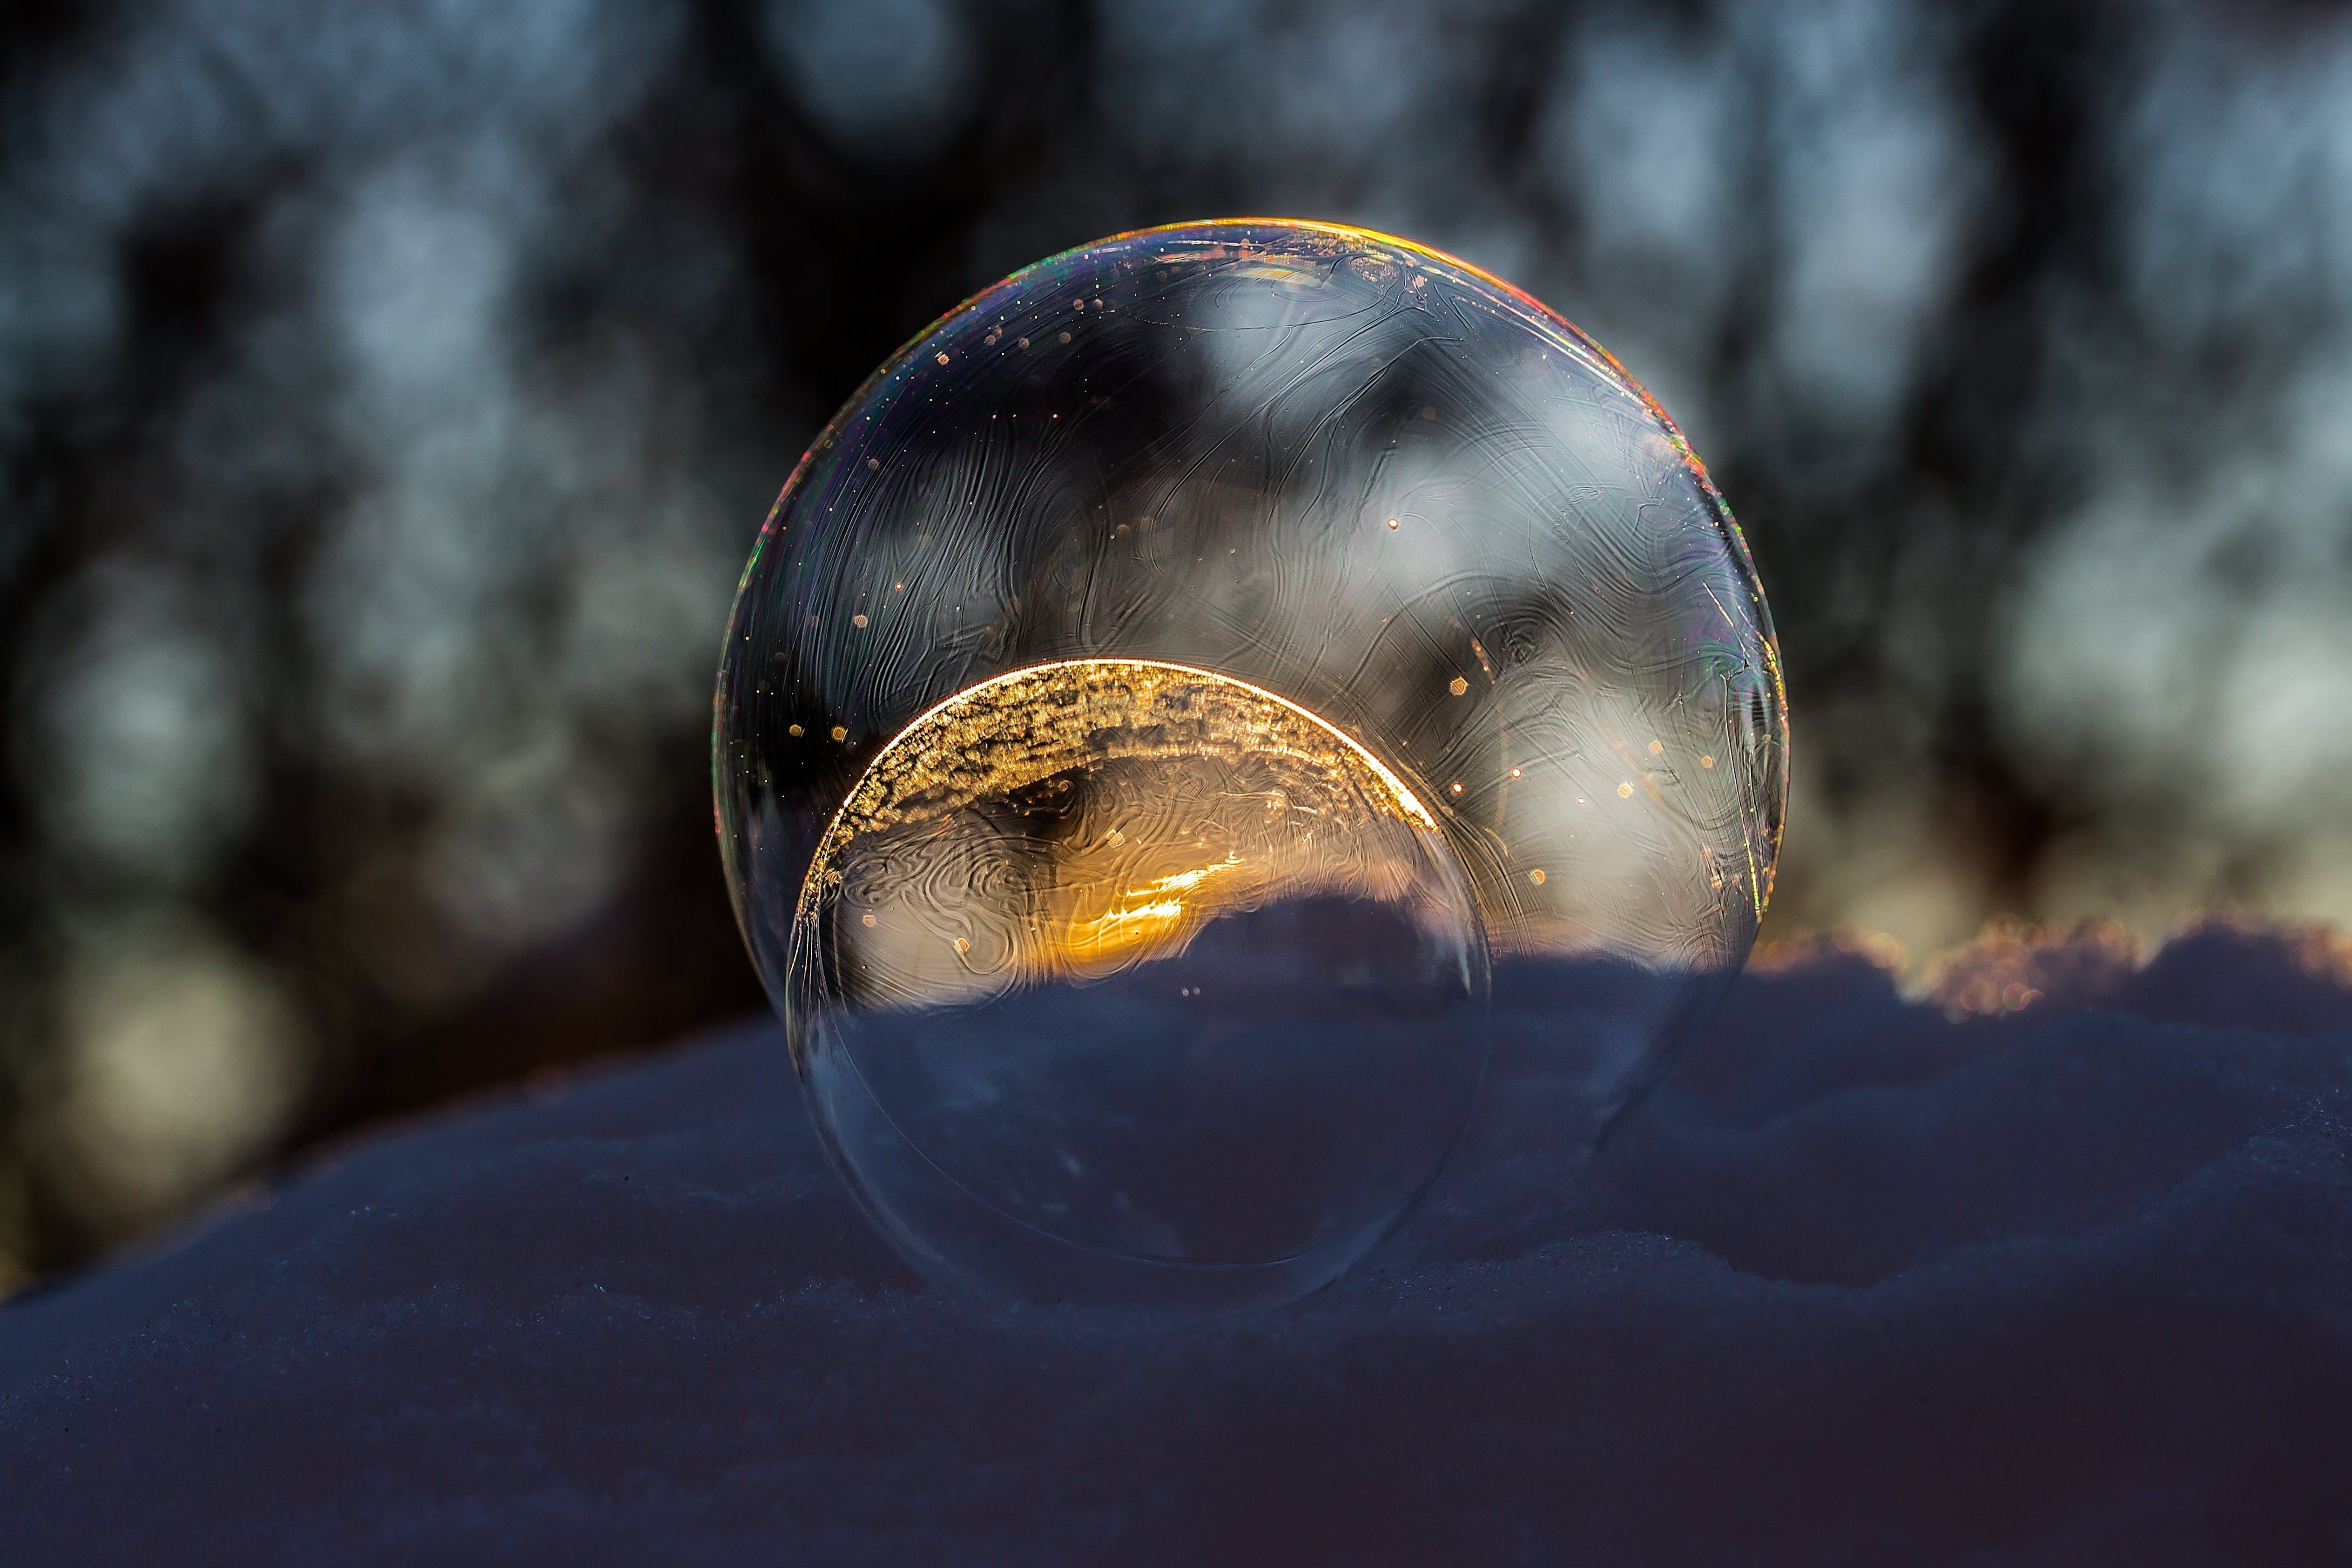 Close-up of Crystal Ball Against Blurred Background